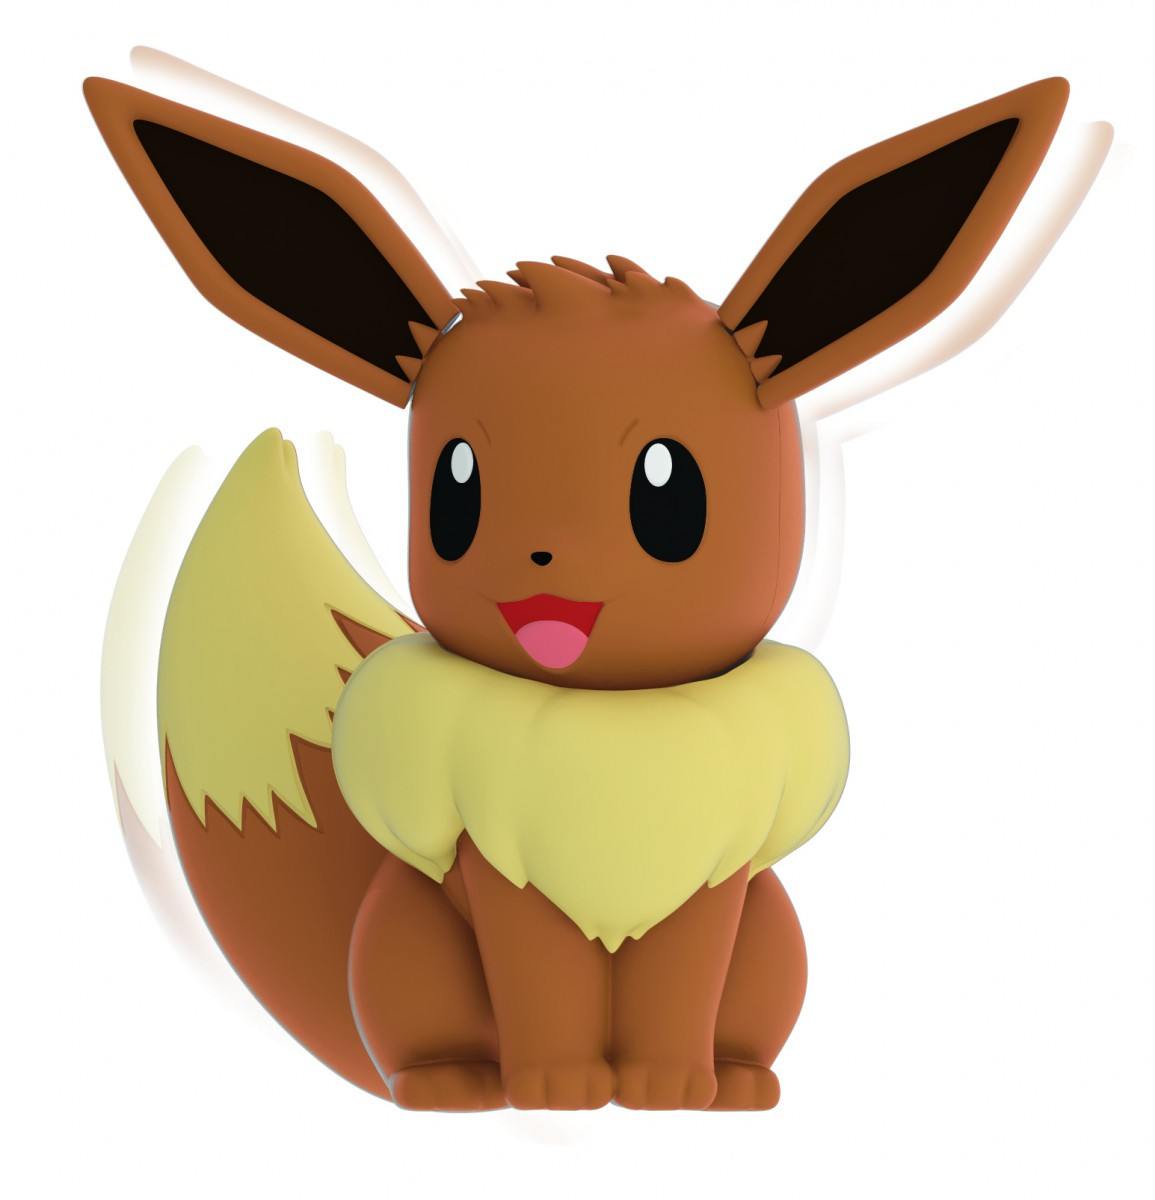 Wicked Cool Toys unveils new Pokemon products - Flickering Myth